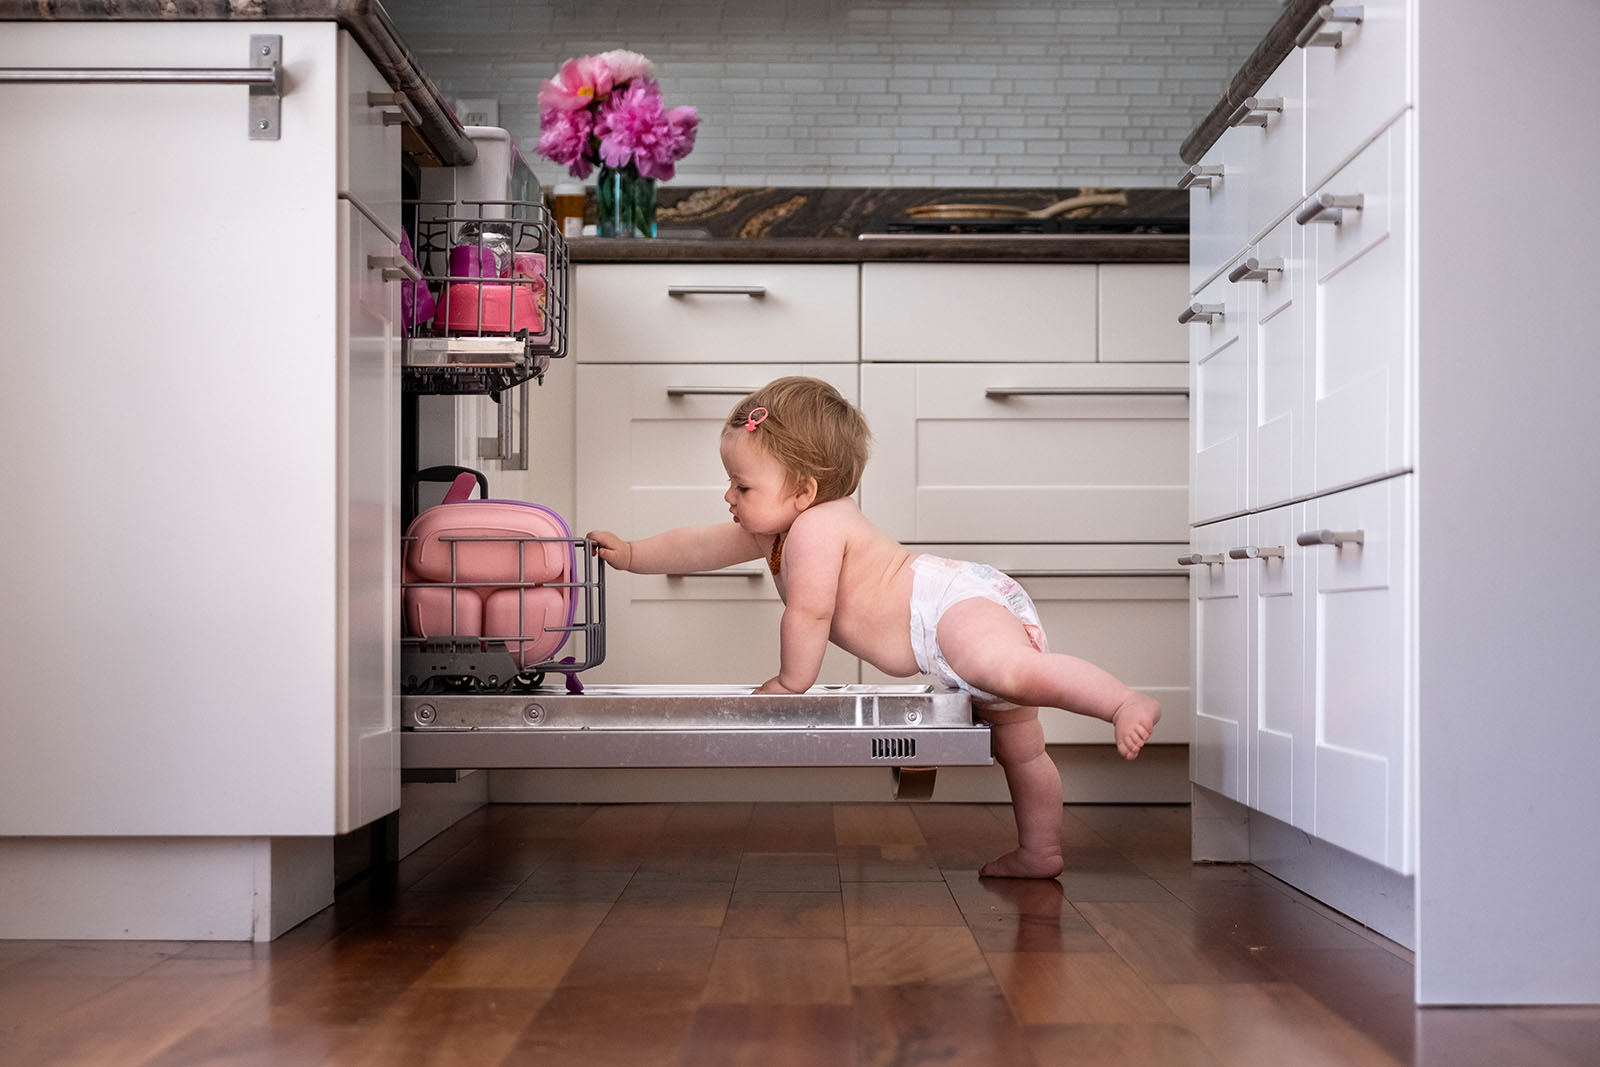 Baby reaching for dishwasher, taken with fujifilm mirrorless